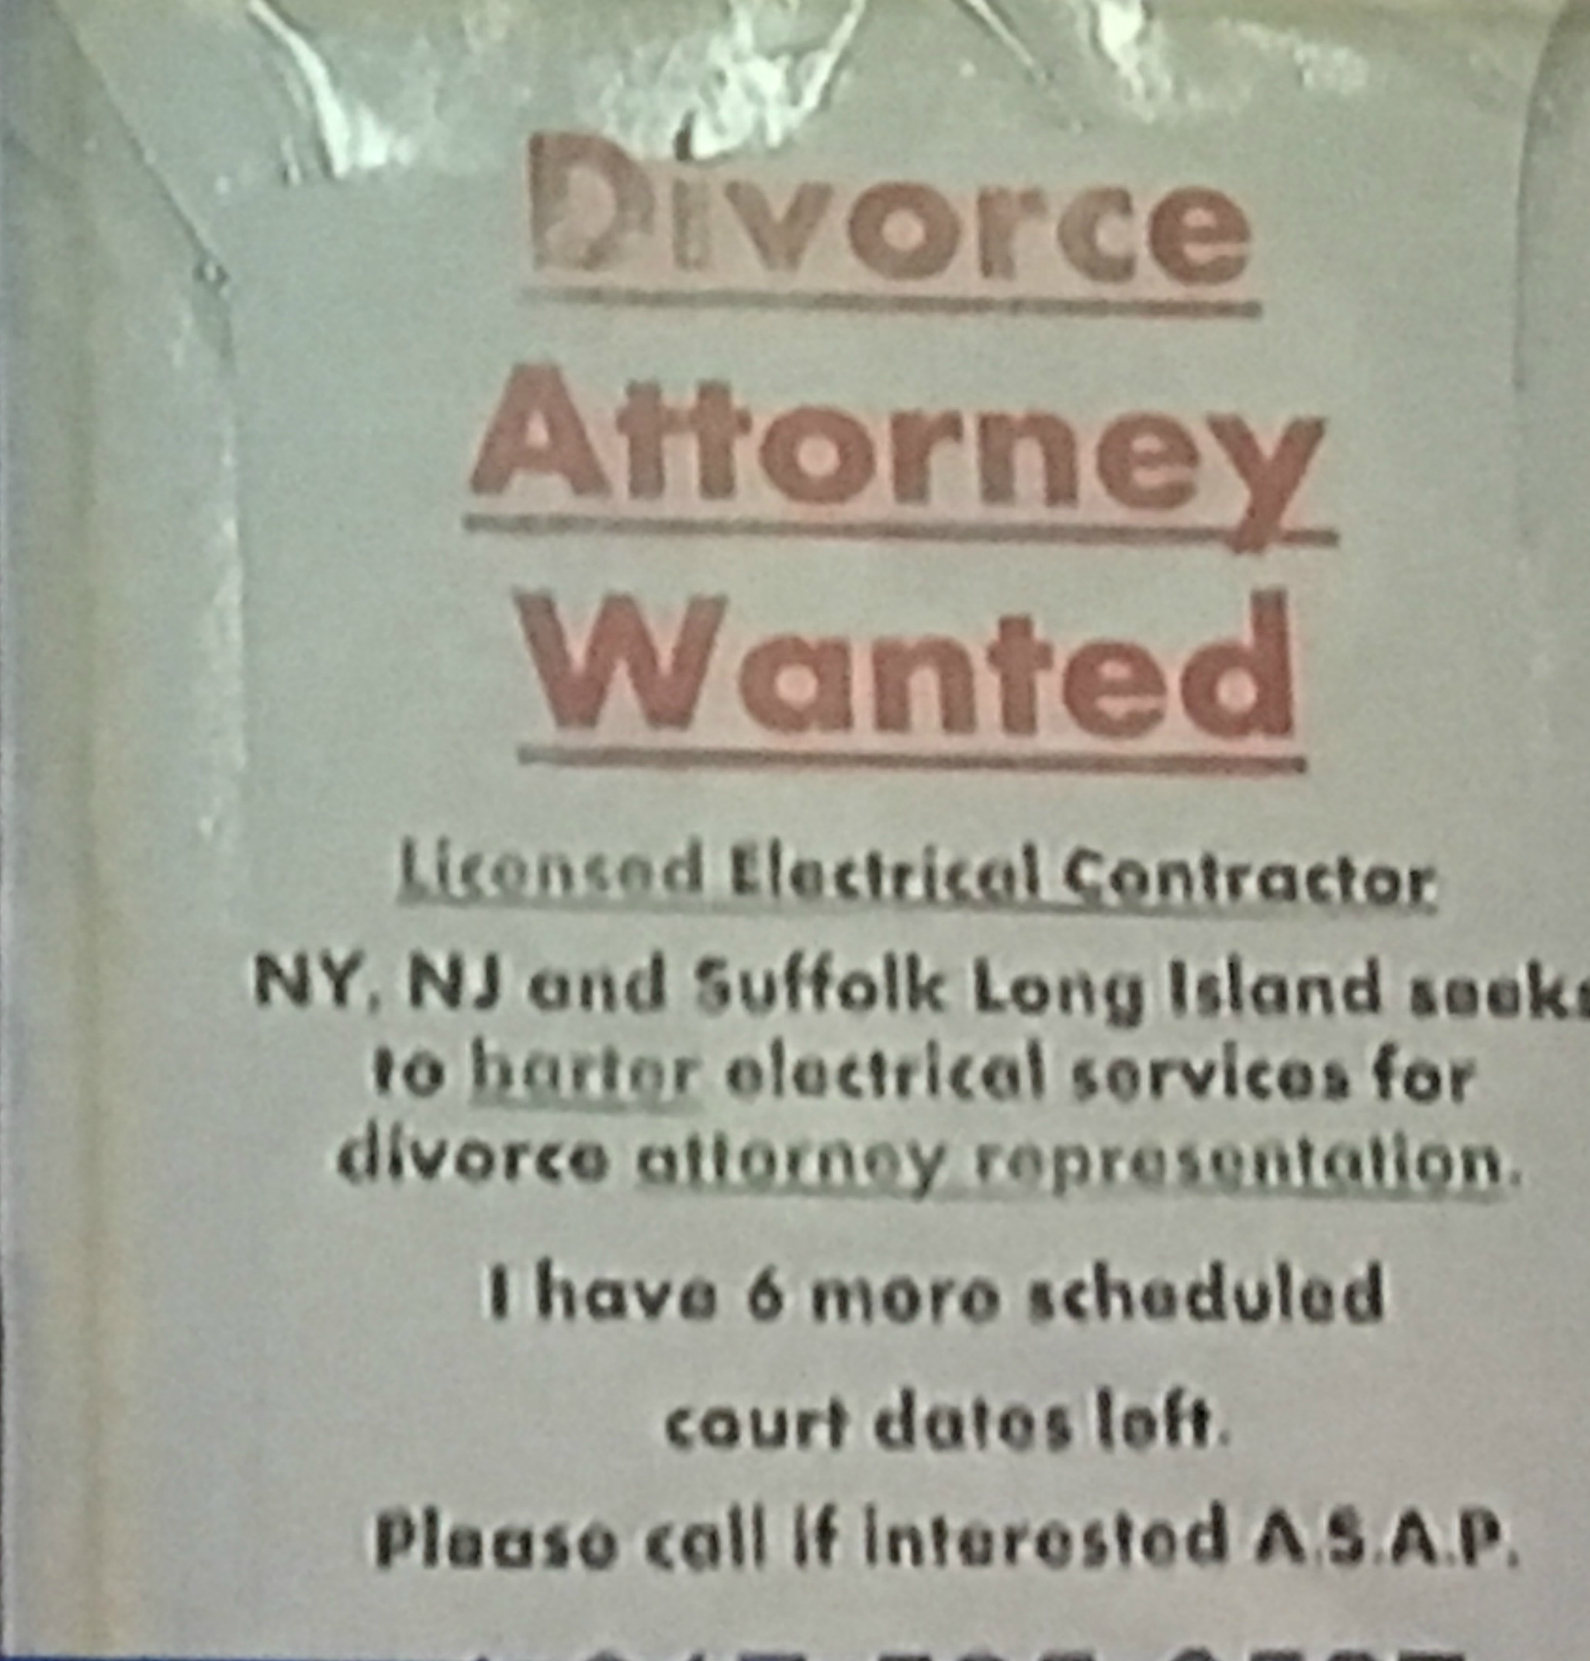 Man Seeks Attorney The Old-Fashioned Way | Above the Law